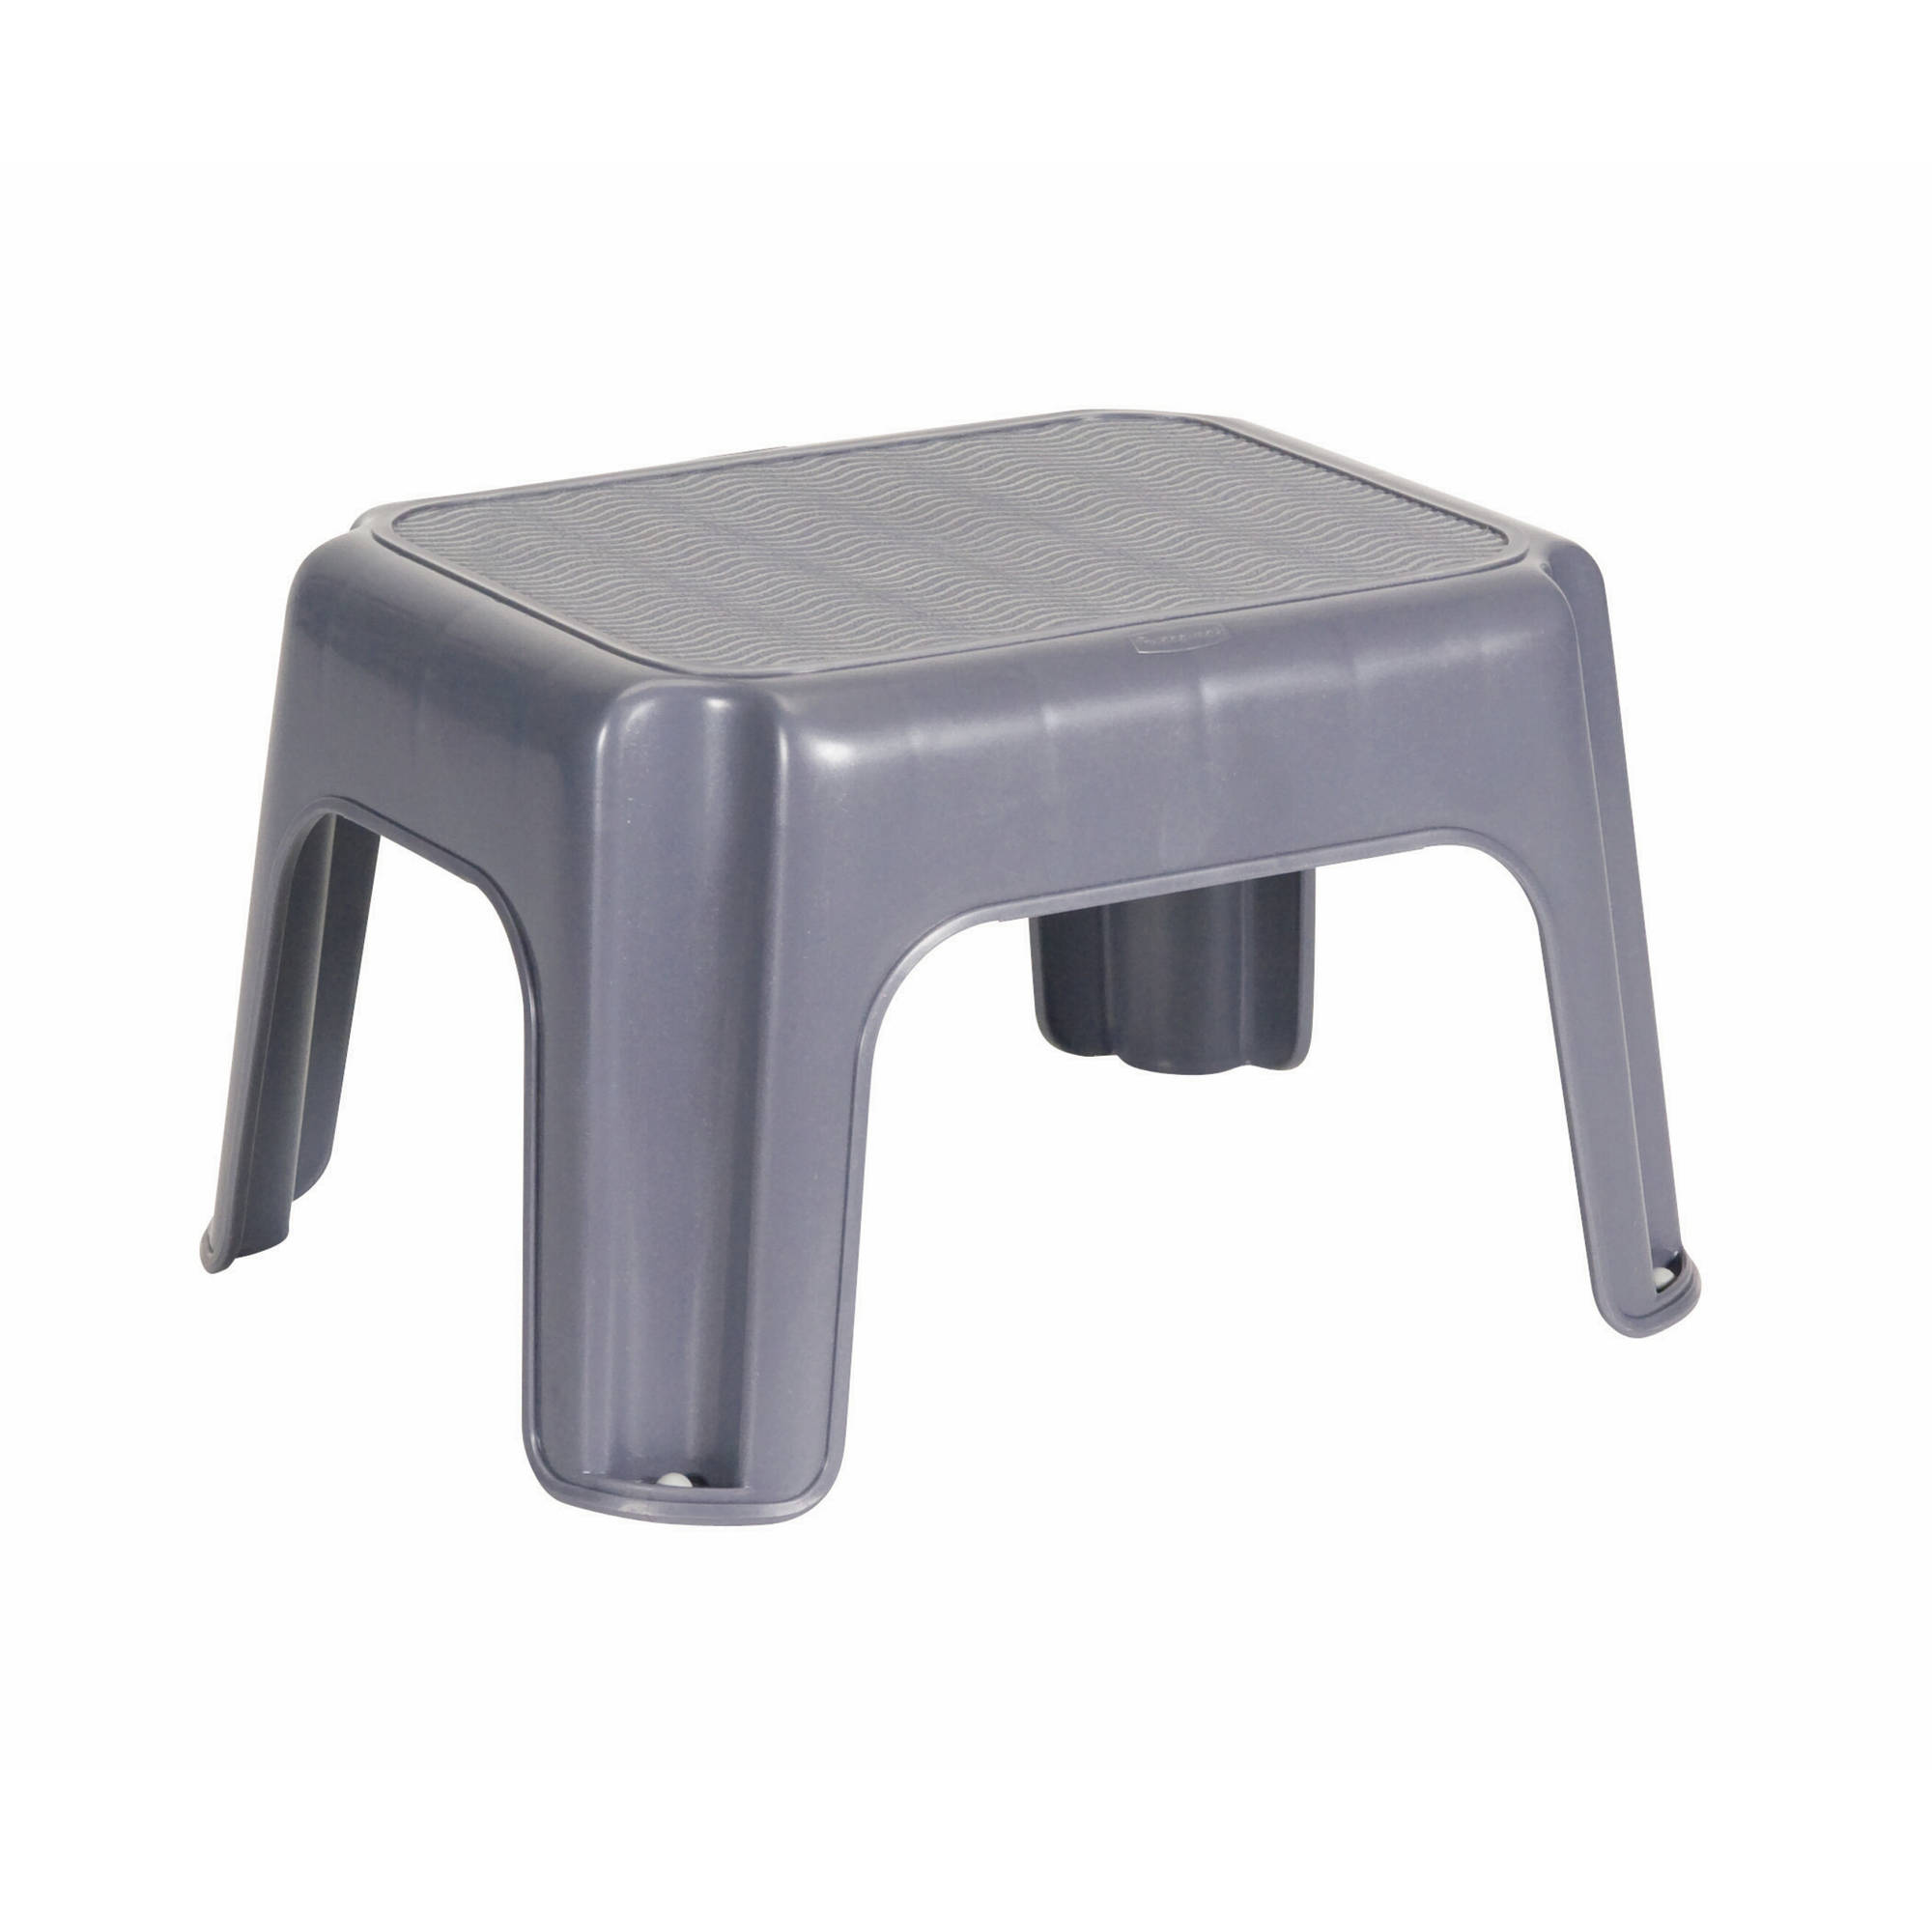 Target Step Stool Affordable Quick View With Target Step